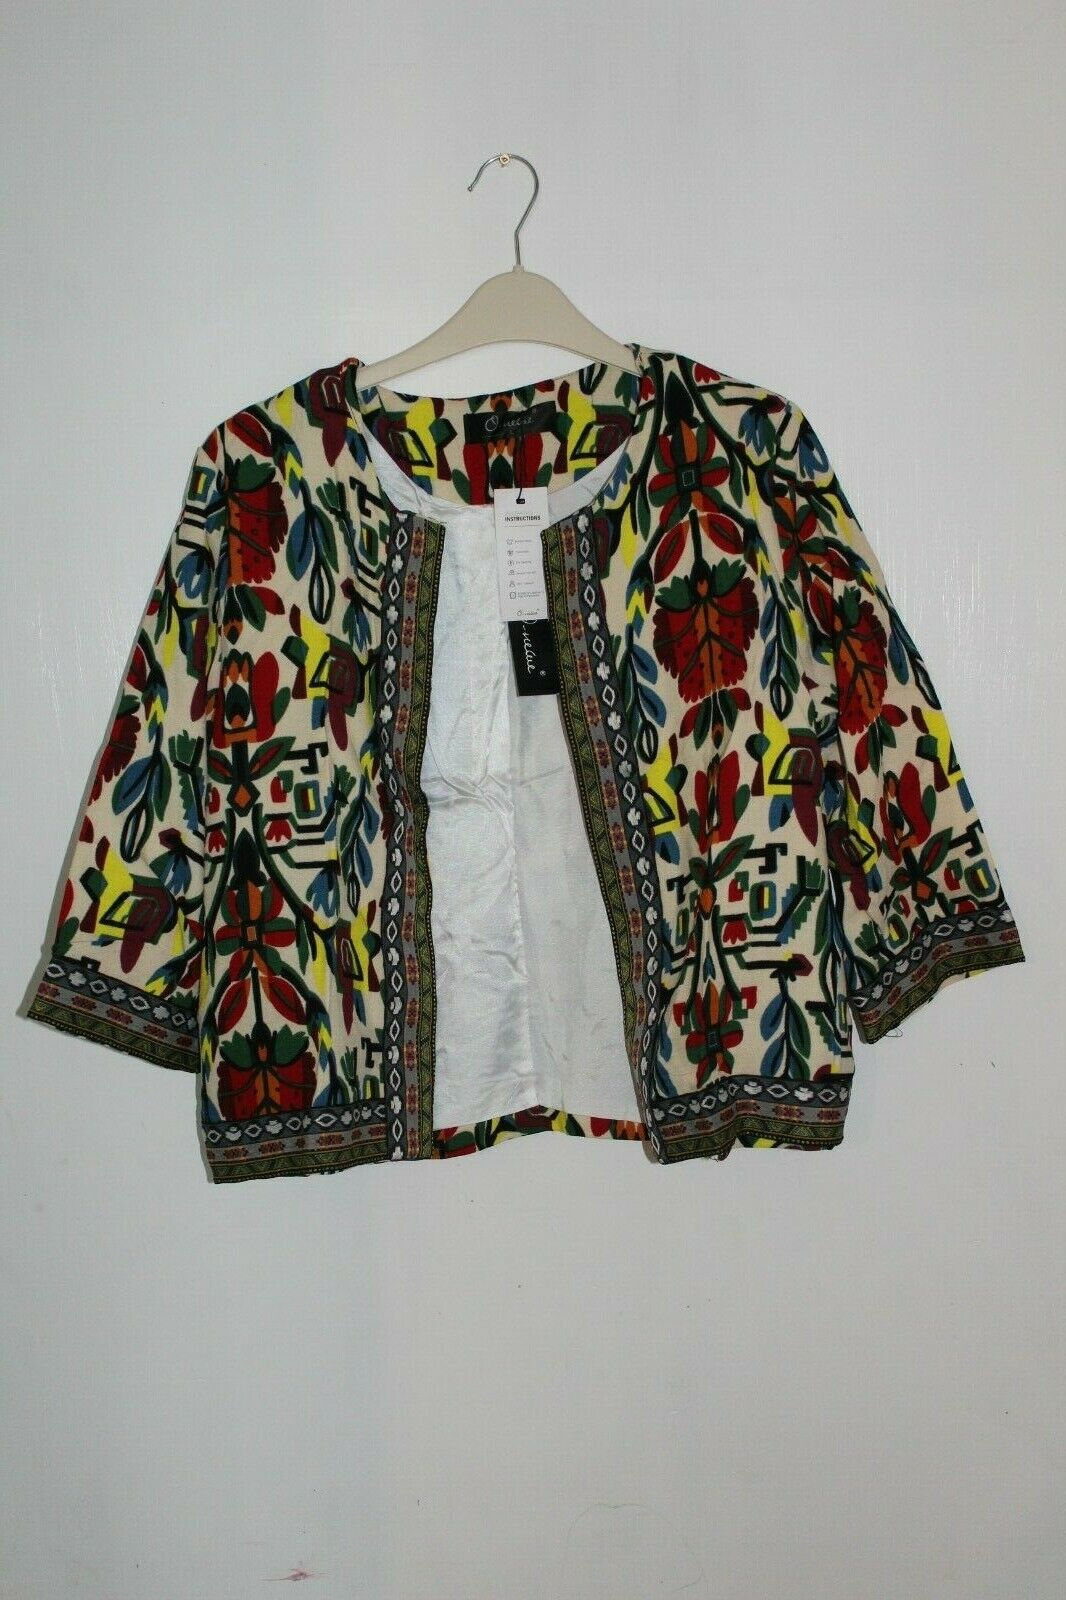 O-Nelue Aztec Blazer Multicoloured Size Large DH094 OO 19